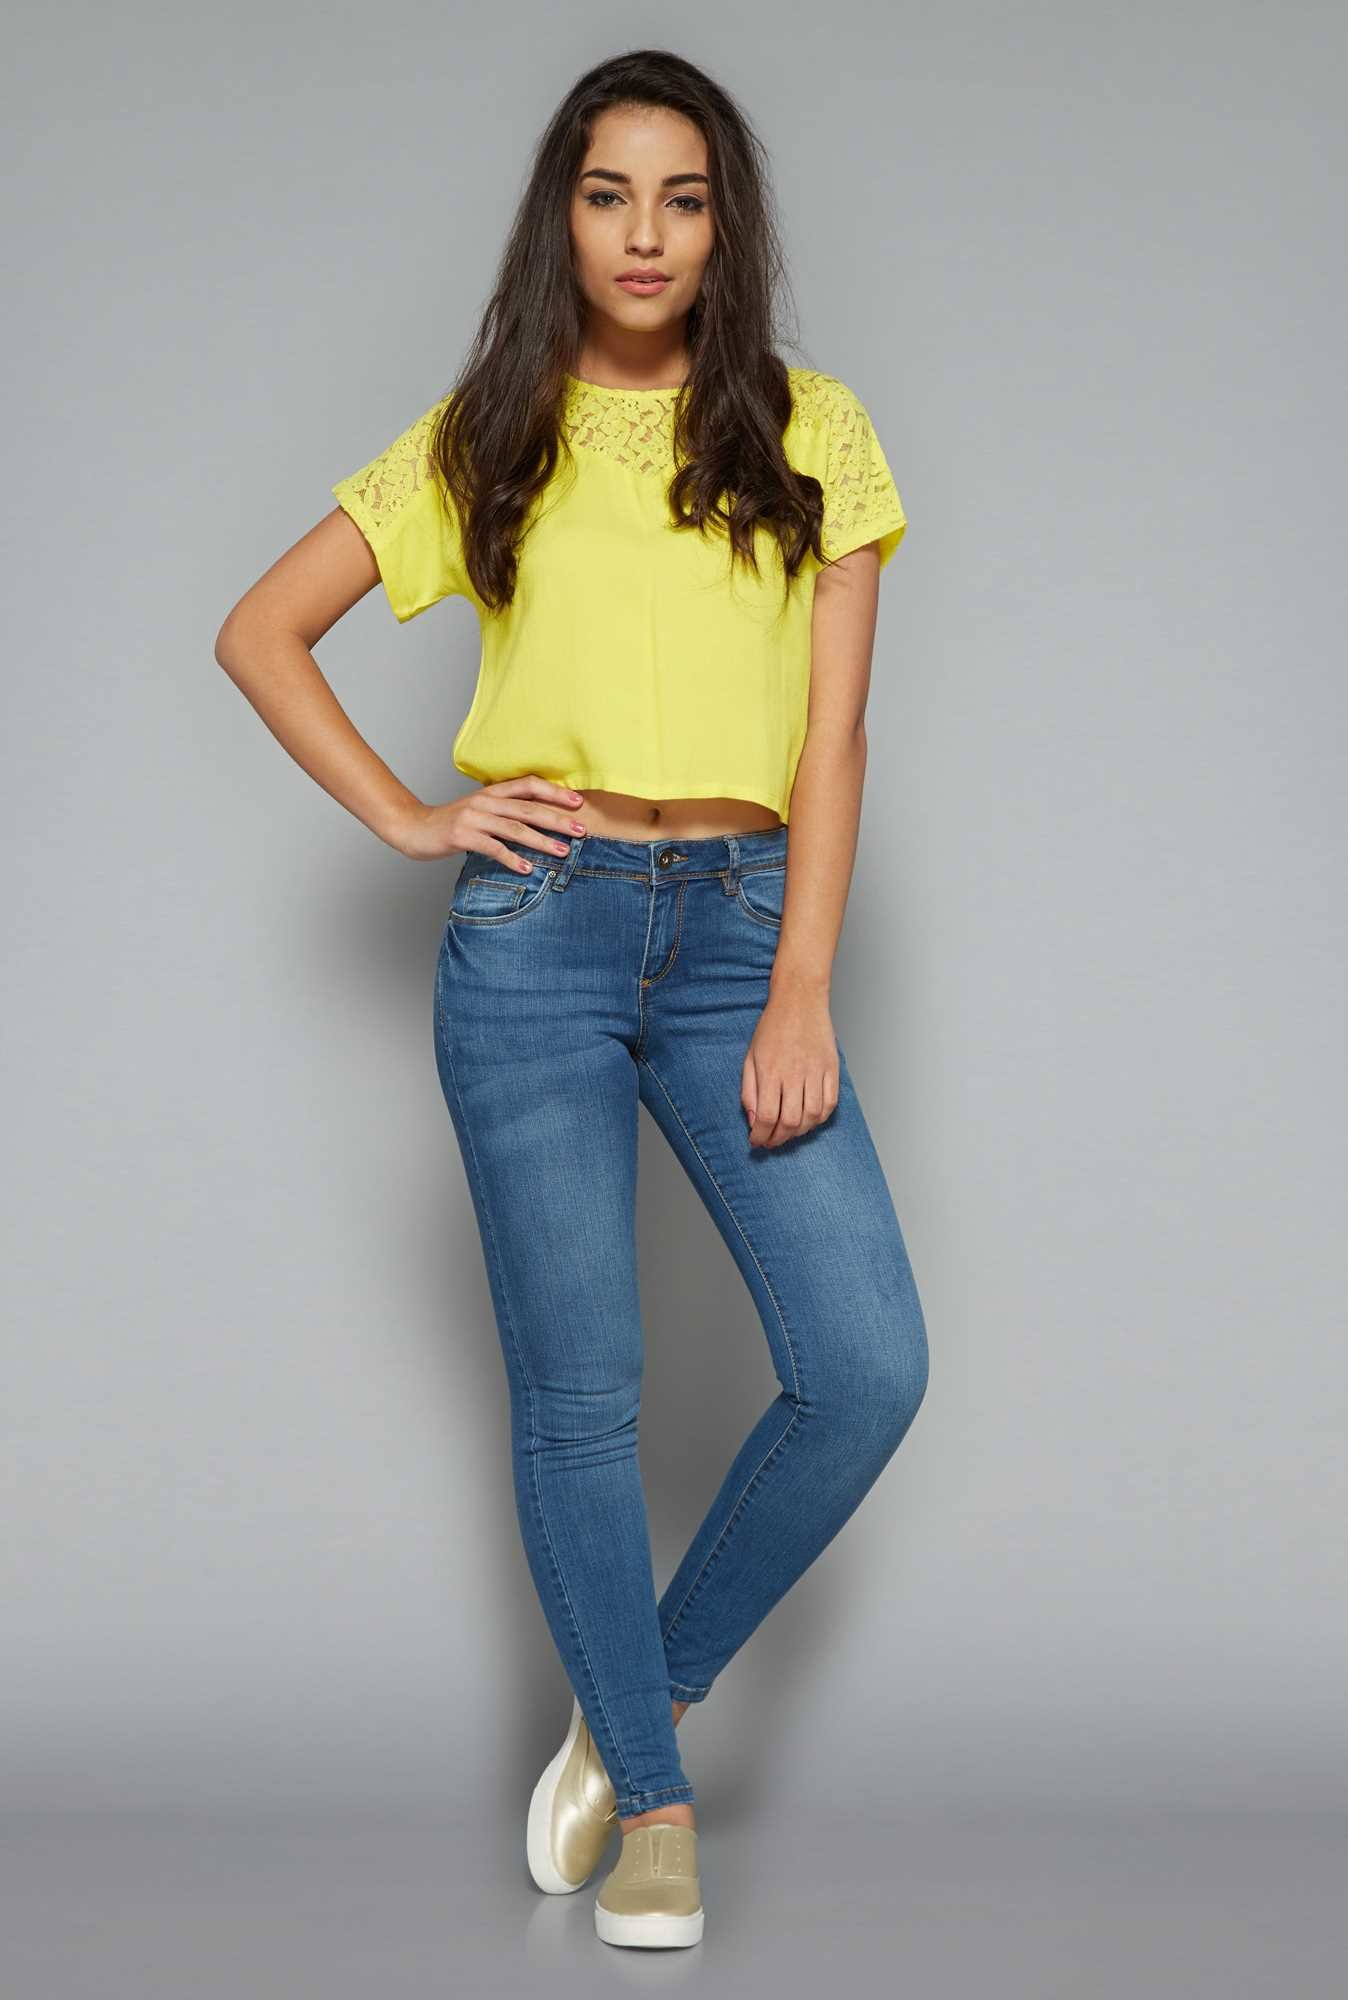 Nuon by Westside Yellow Lace Top